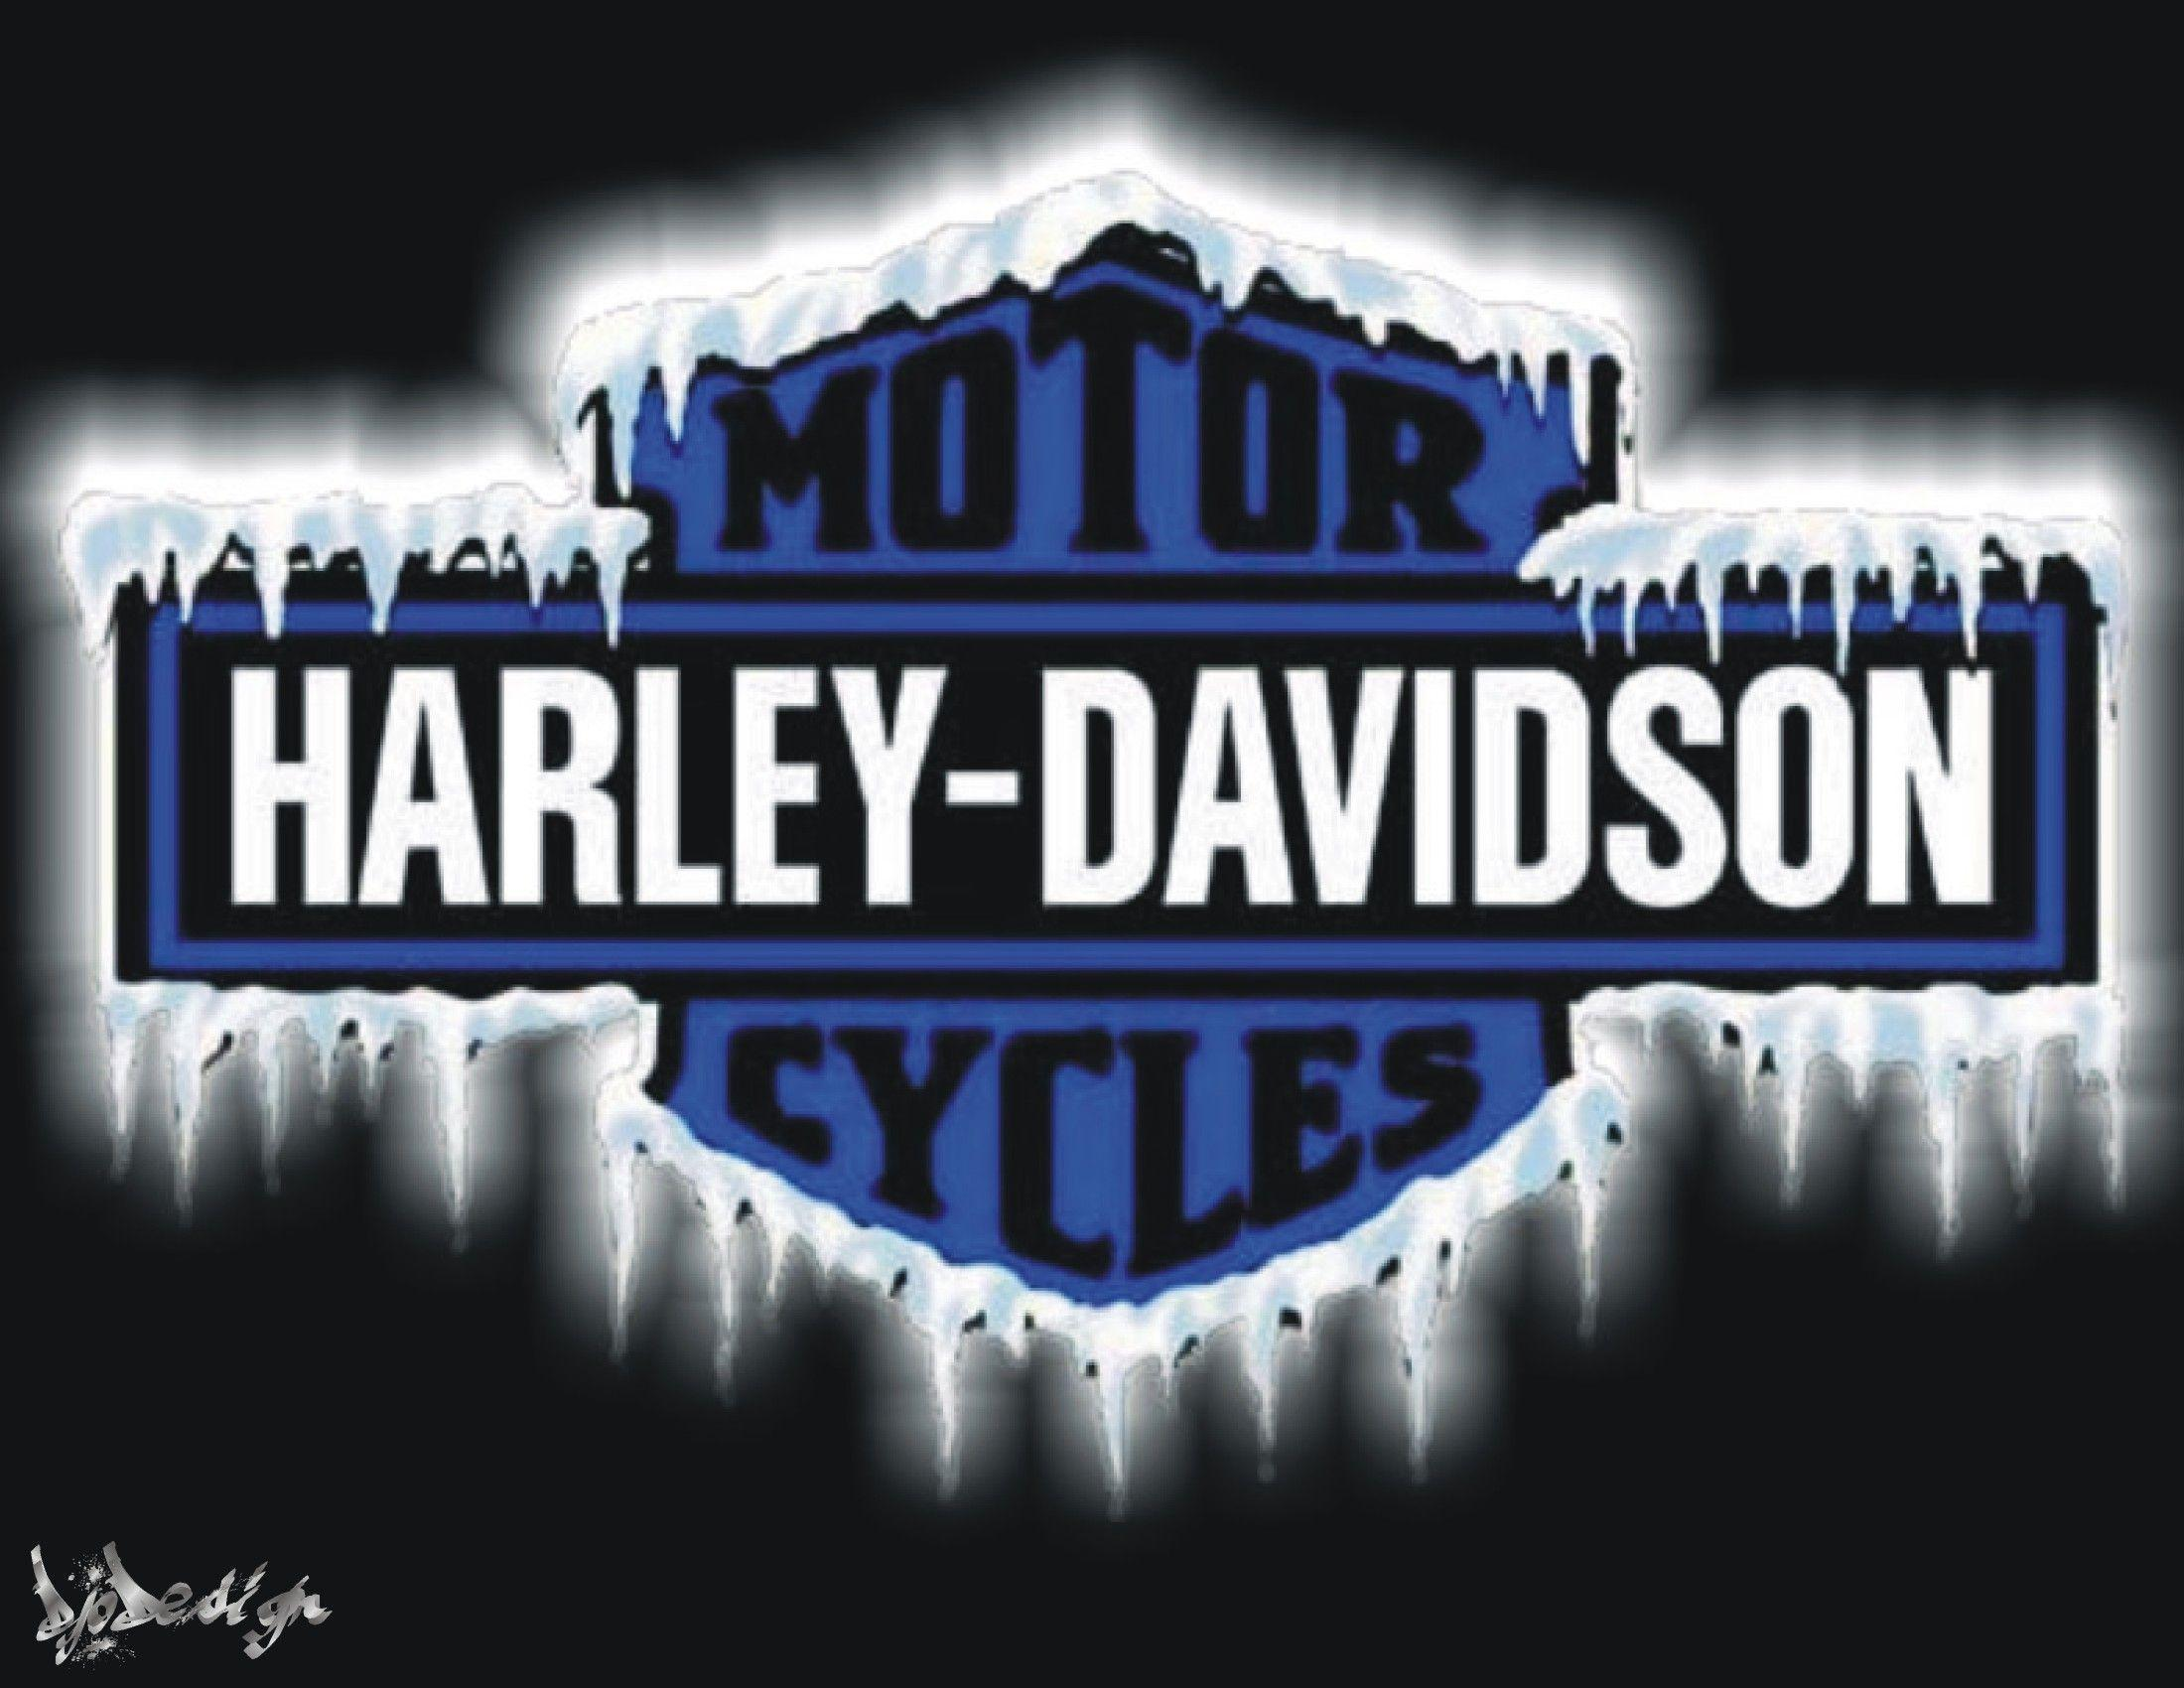 newest harley davidson logo wallpapers - photo #30